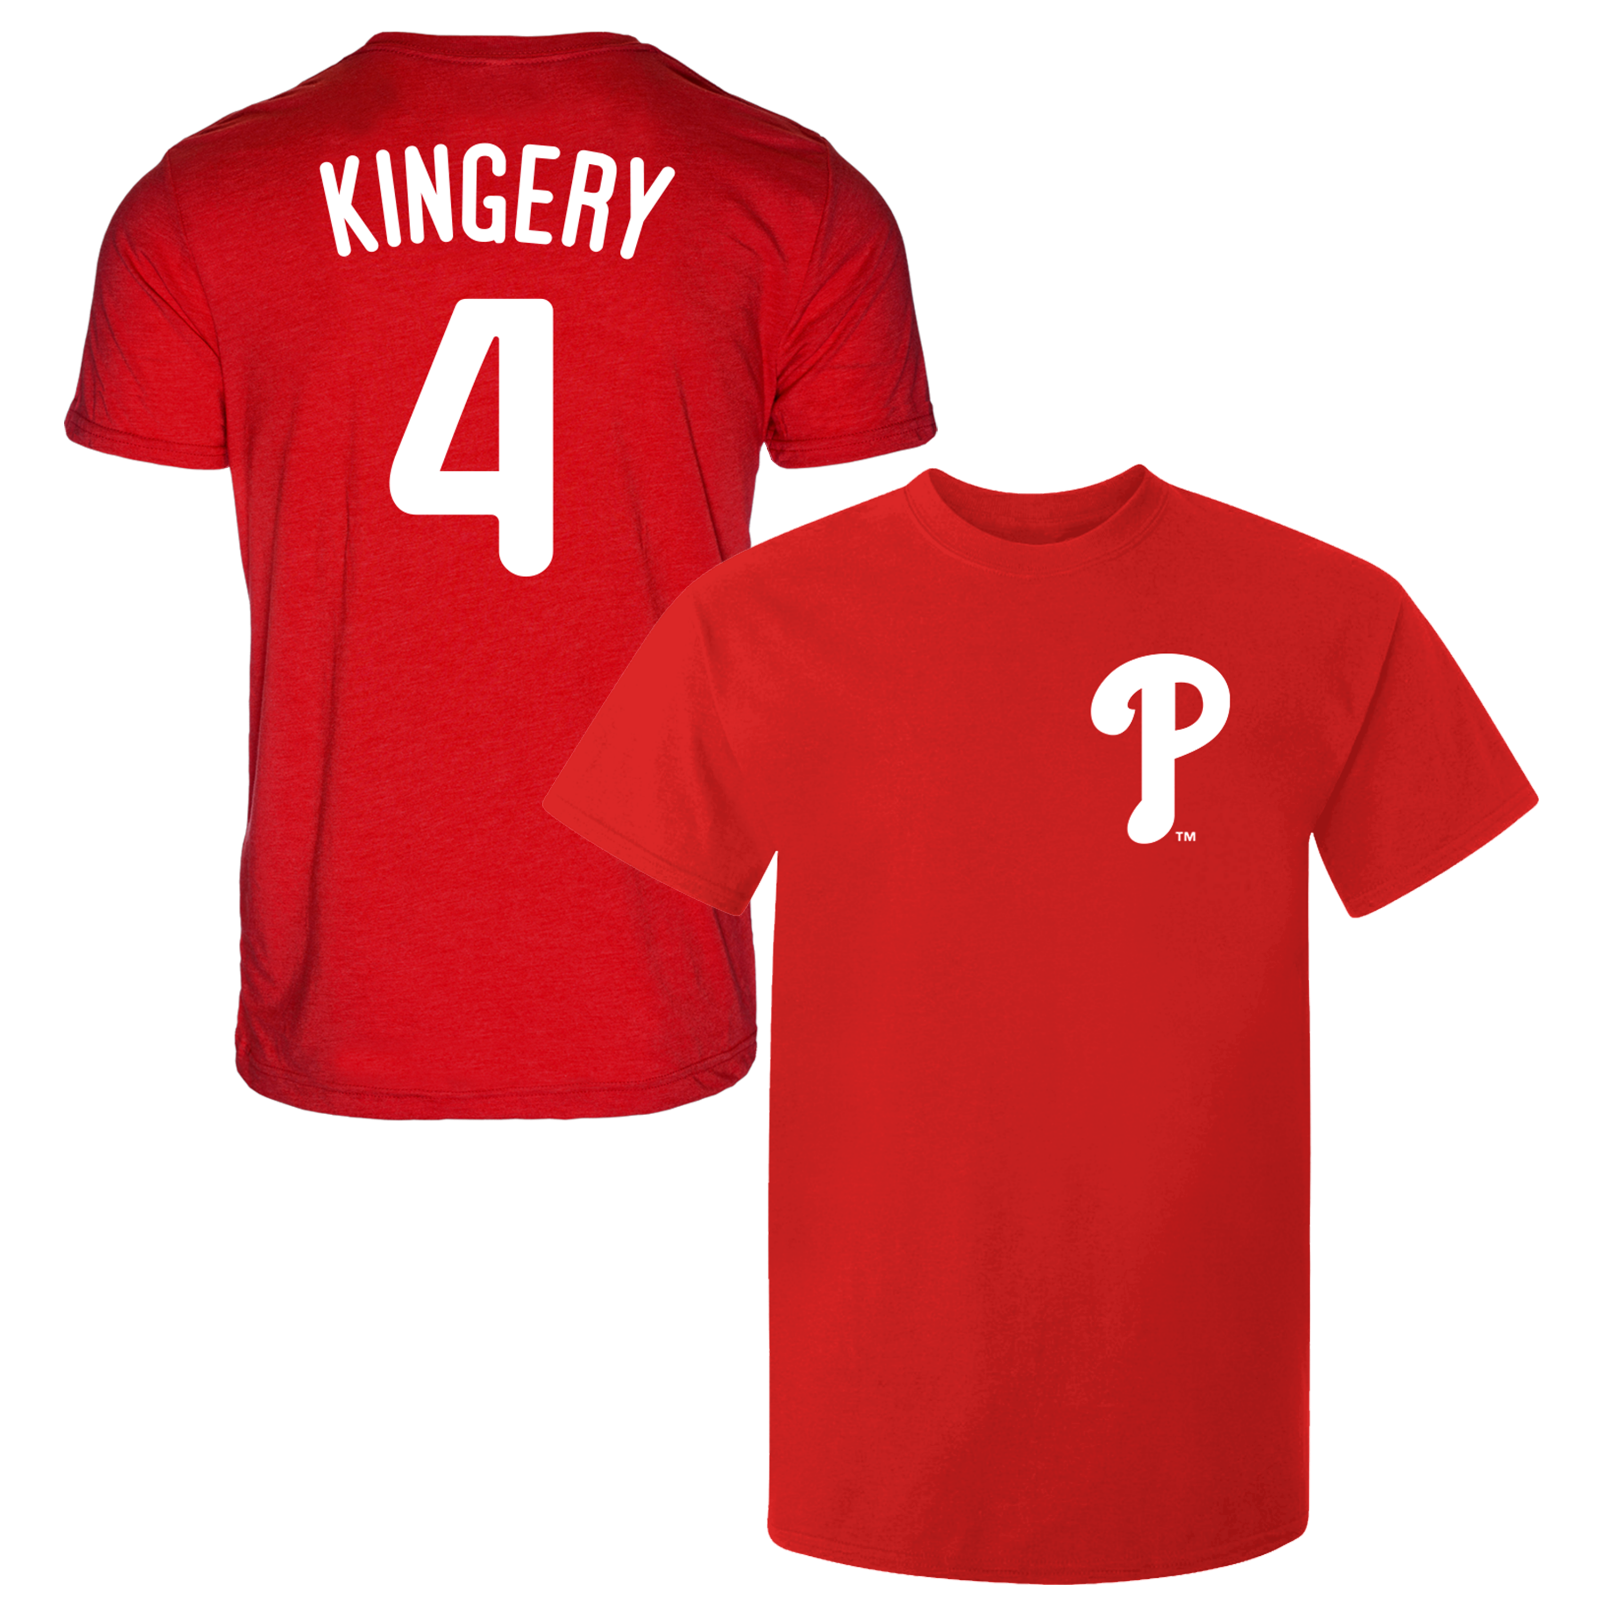 Primary image for Scott Kingery T-Shirt Philadelphia Phillies MLB Soft Jersey #4 (S-3XL)